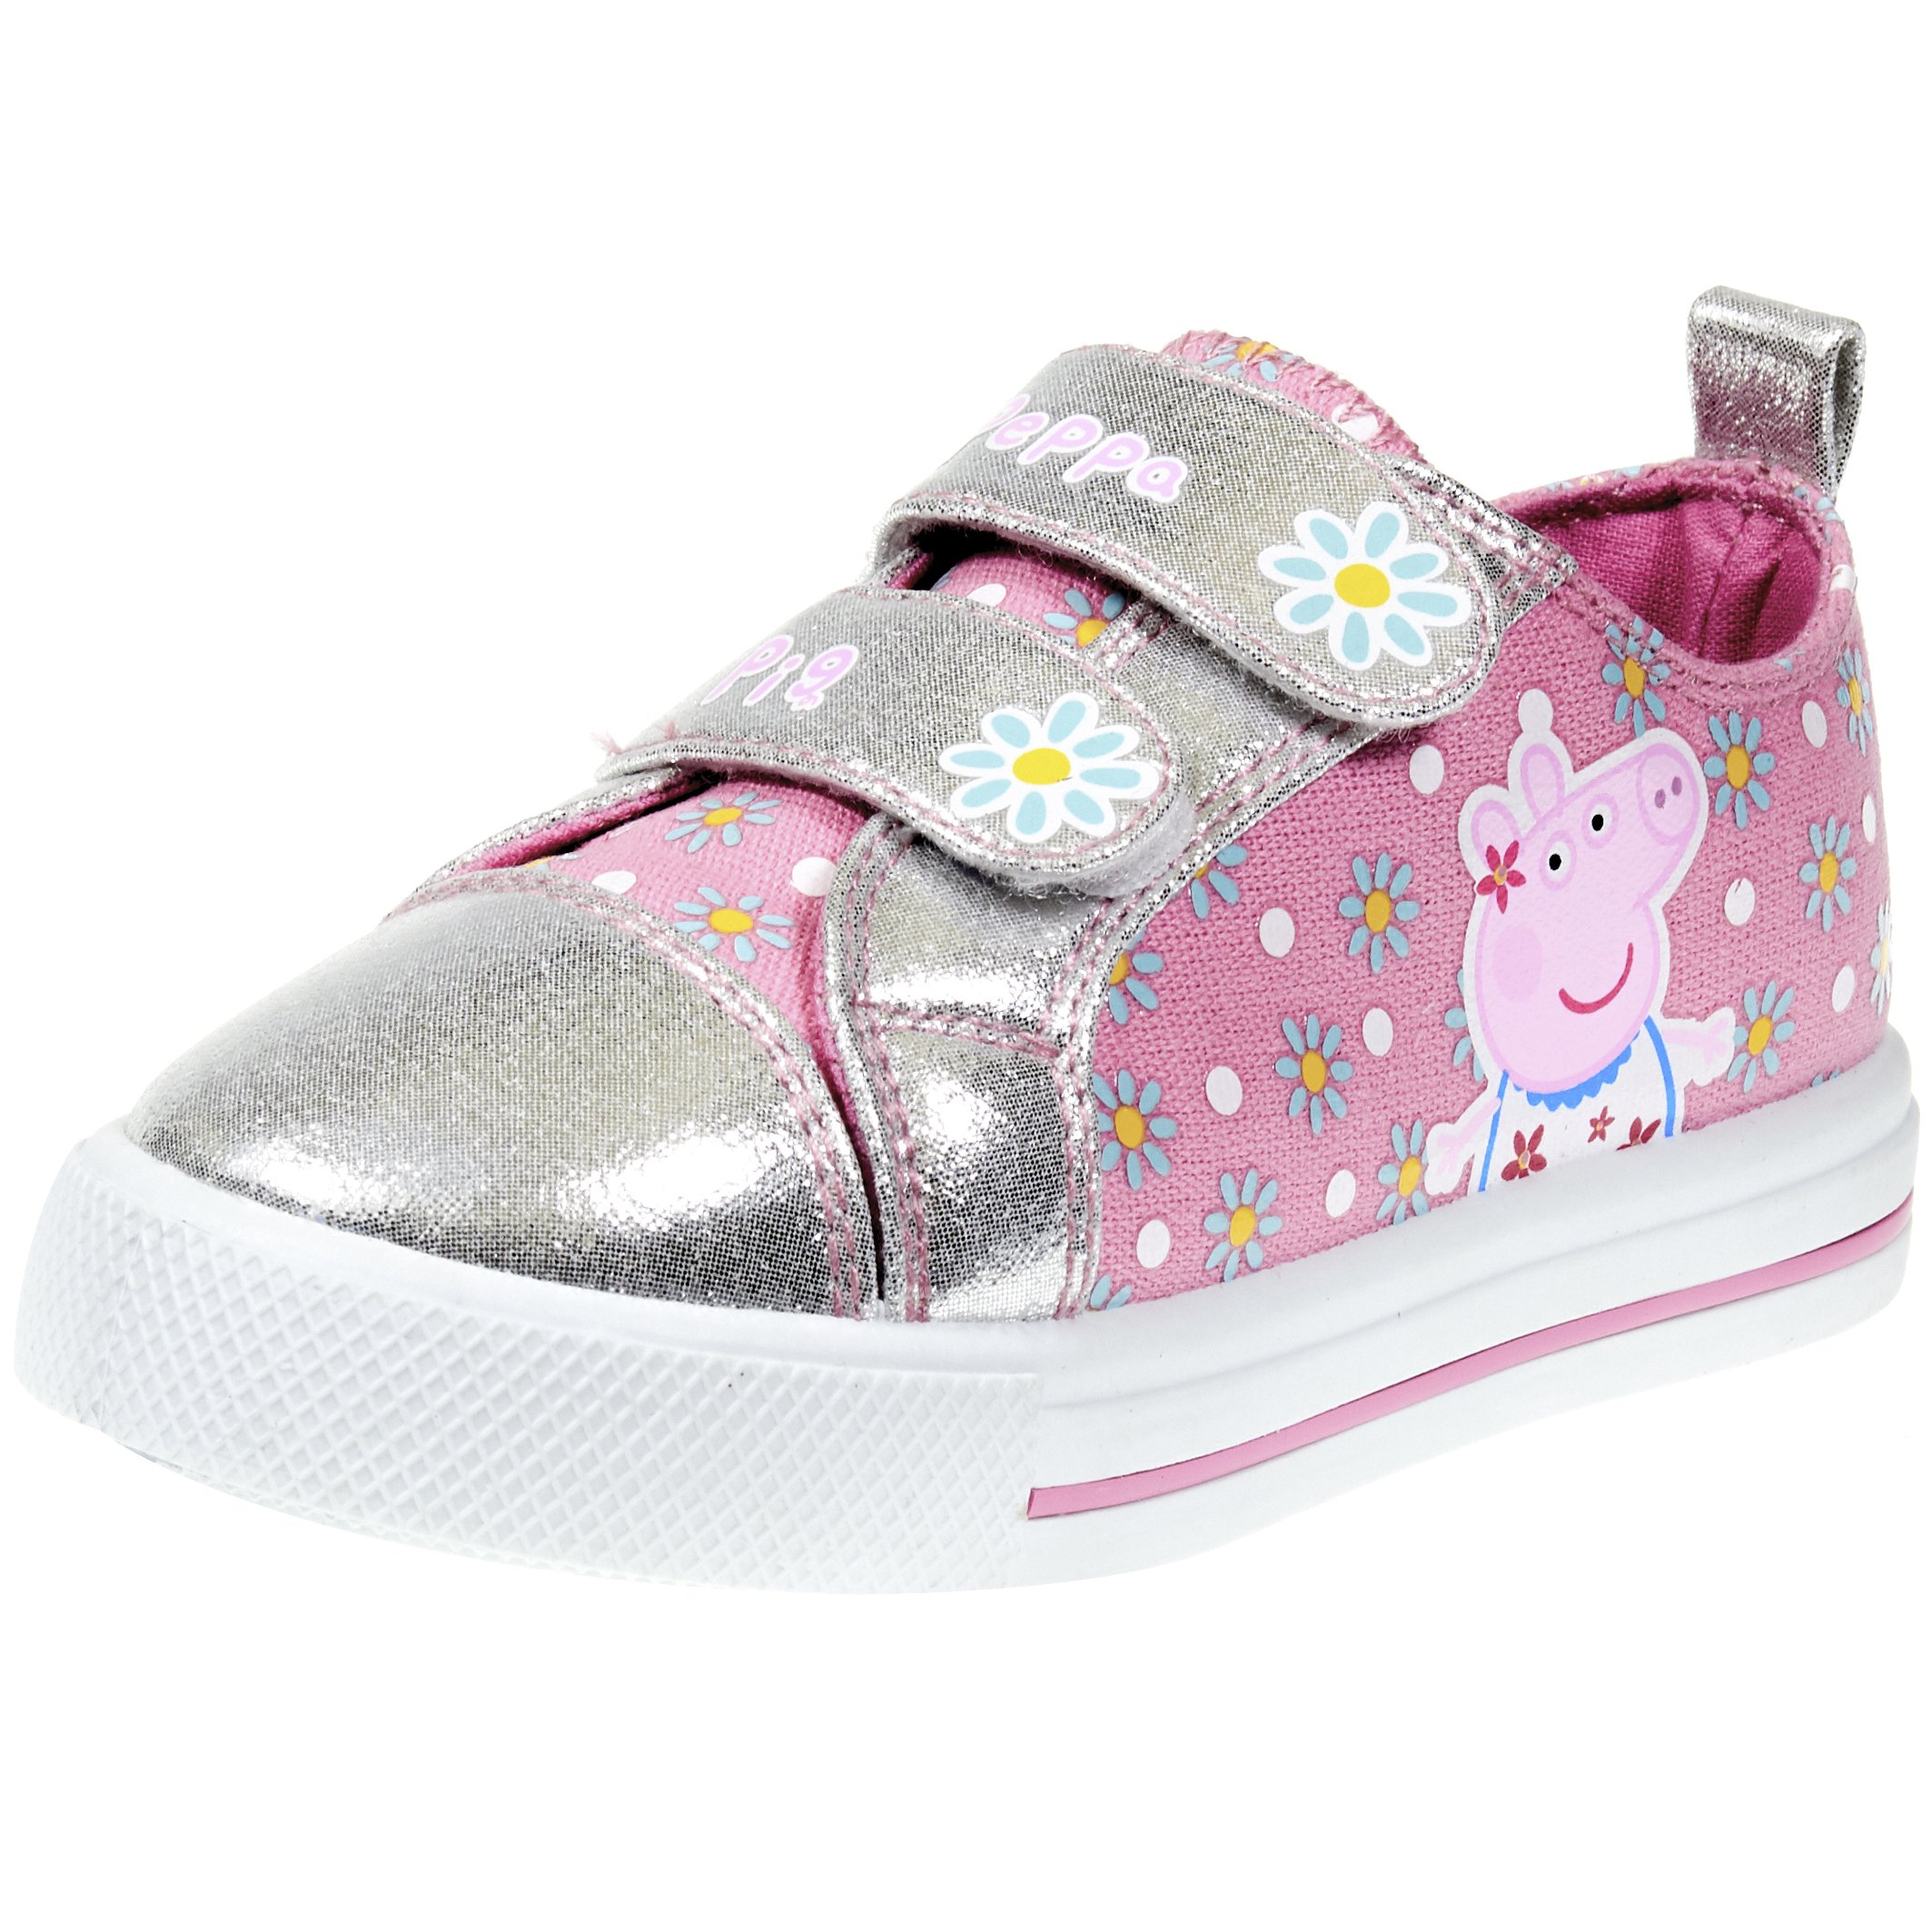 Peppa Pig Kids Toddler Girls Silver and Pink Floral Canvas Sneaker with Velcro Straps, Size 7